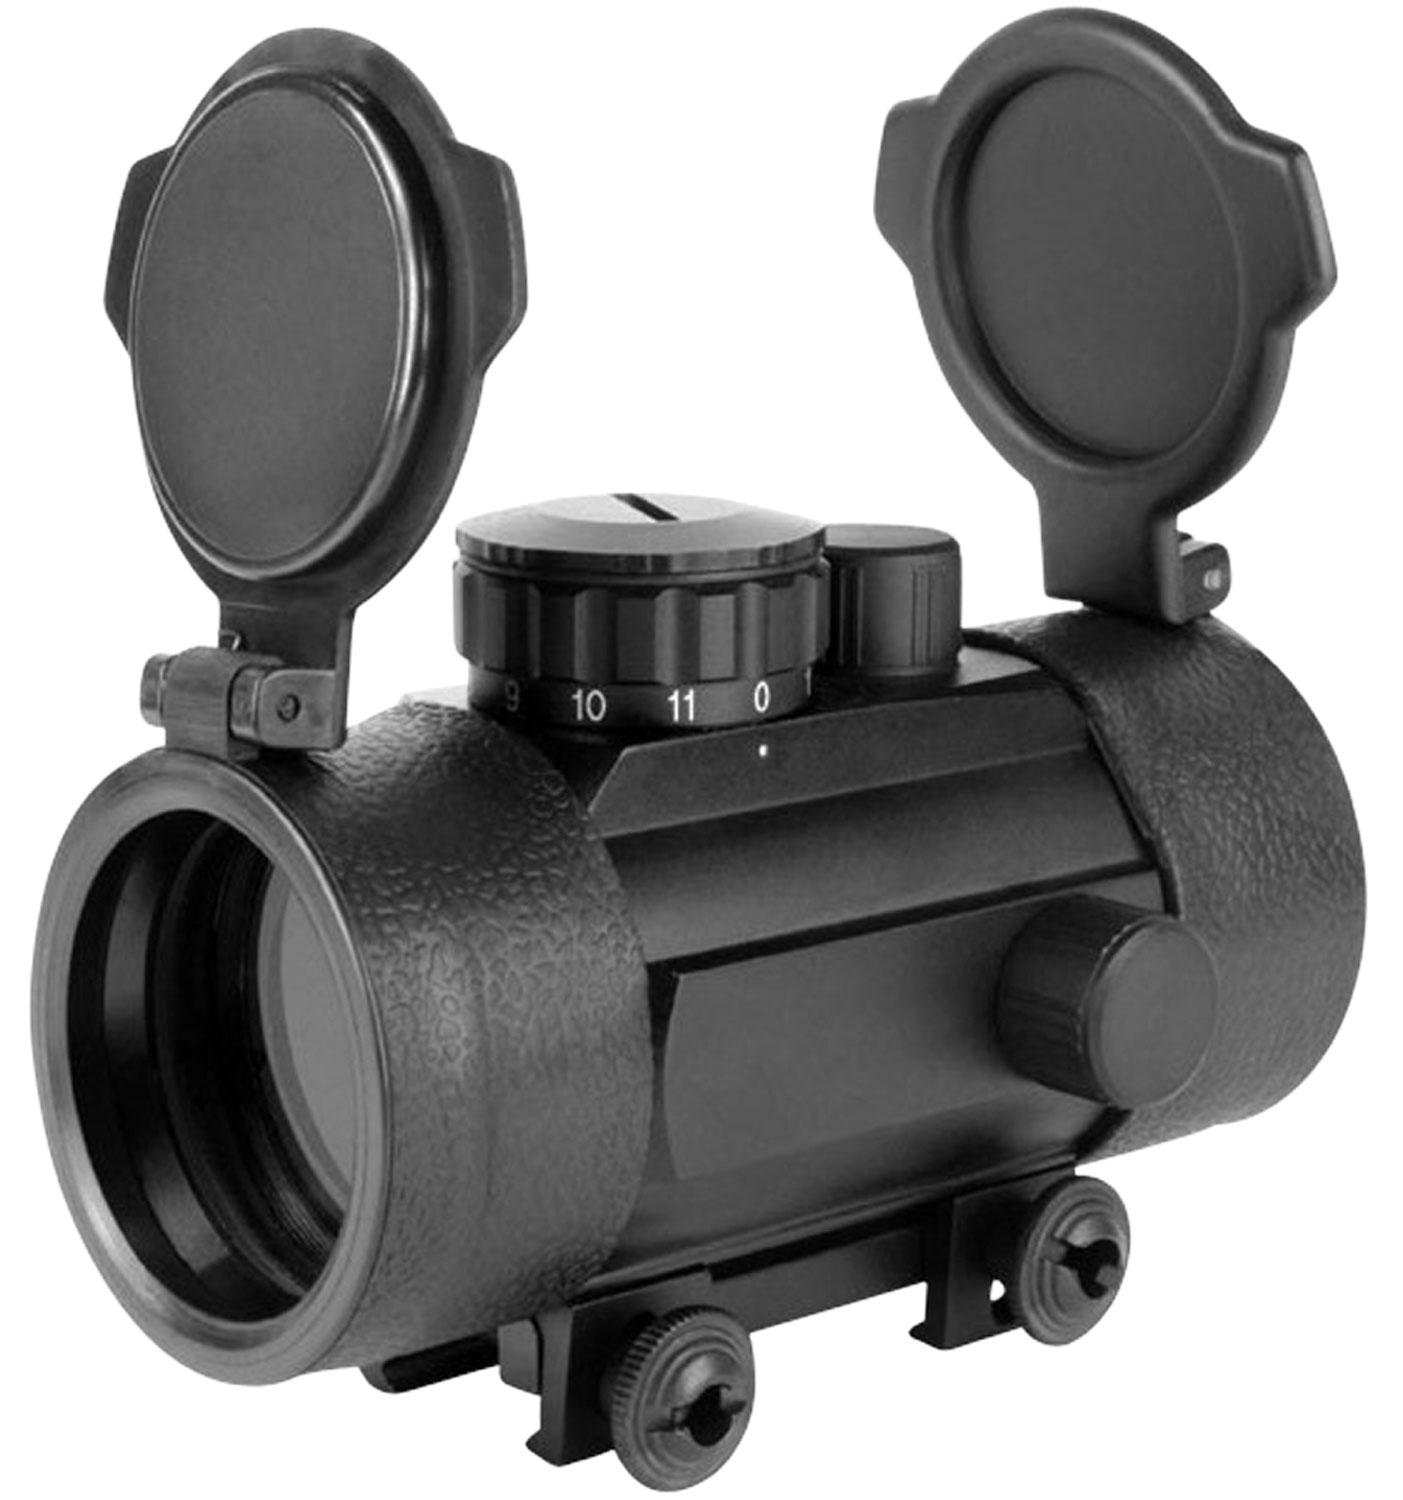 Aim Sports Rt42w Red Dot Sight 1x42mm Obj Unlimited Eye Relief 3 Moa Black